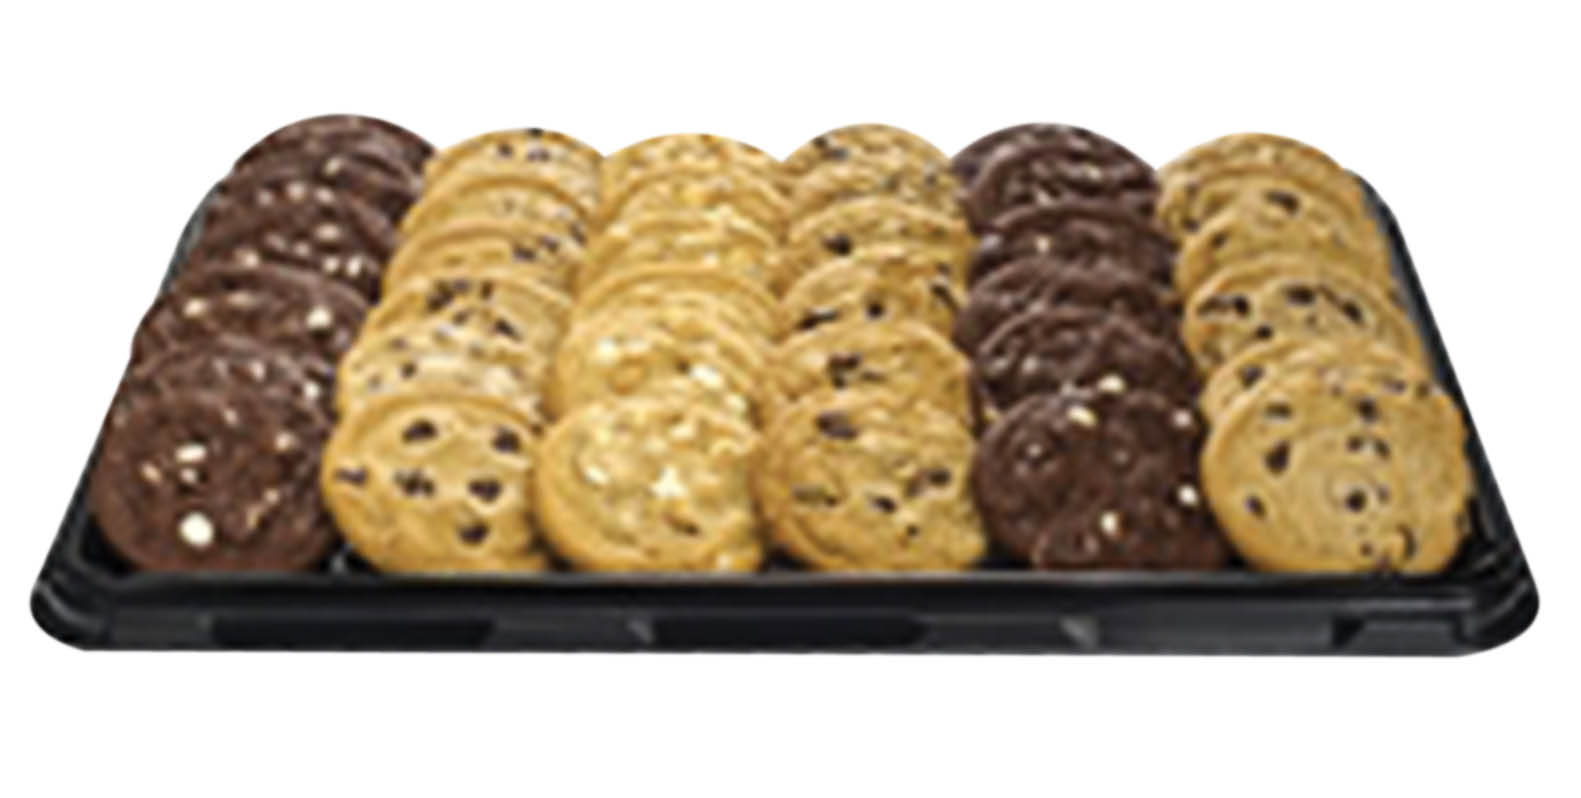 All of the soft cookies with chocolate you could want.